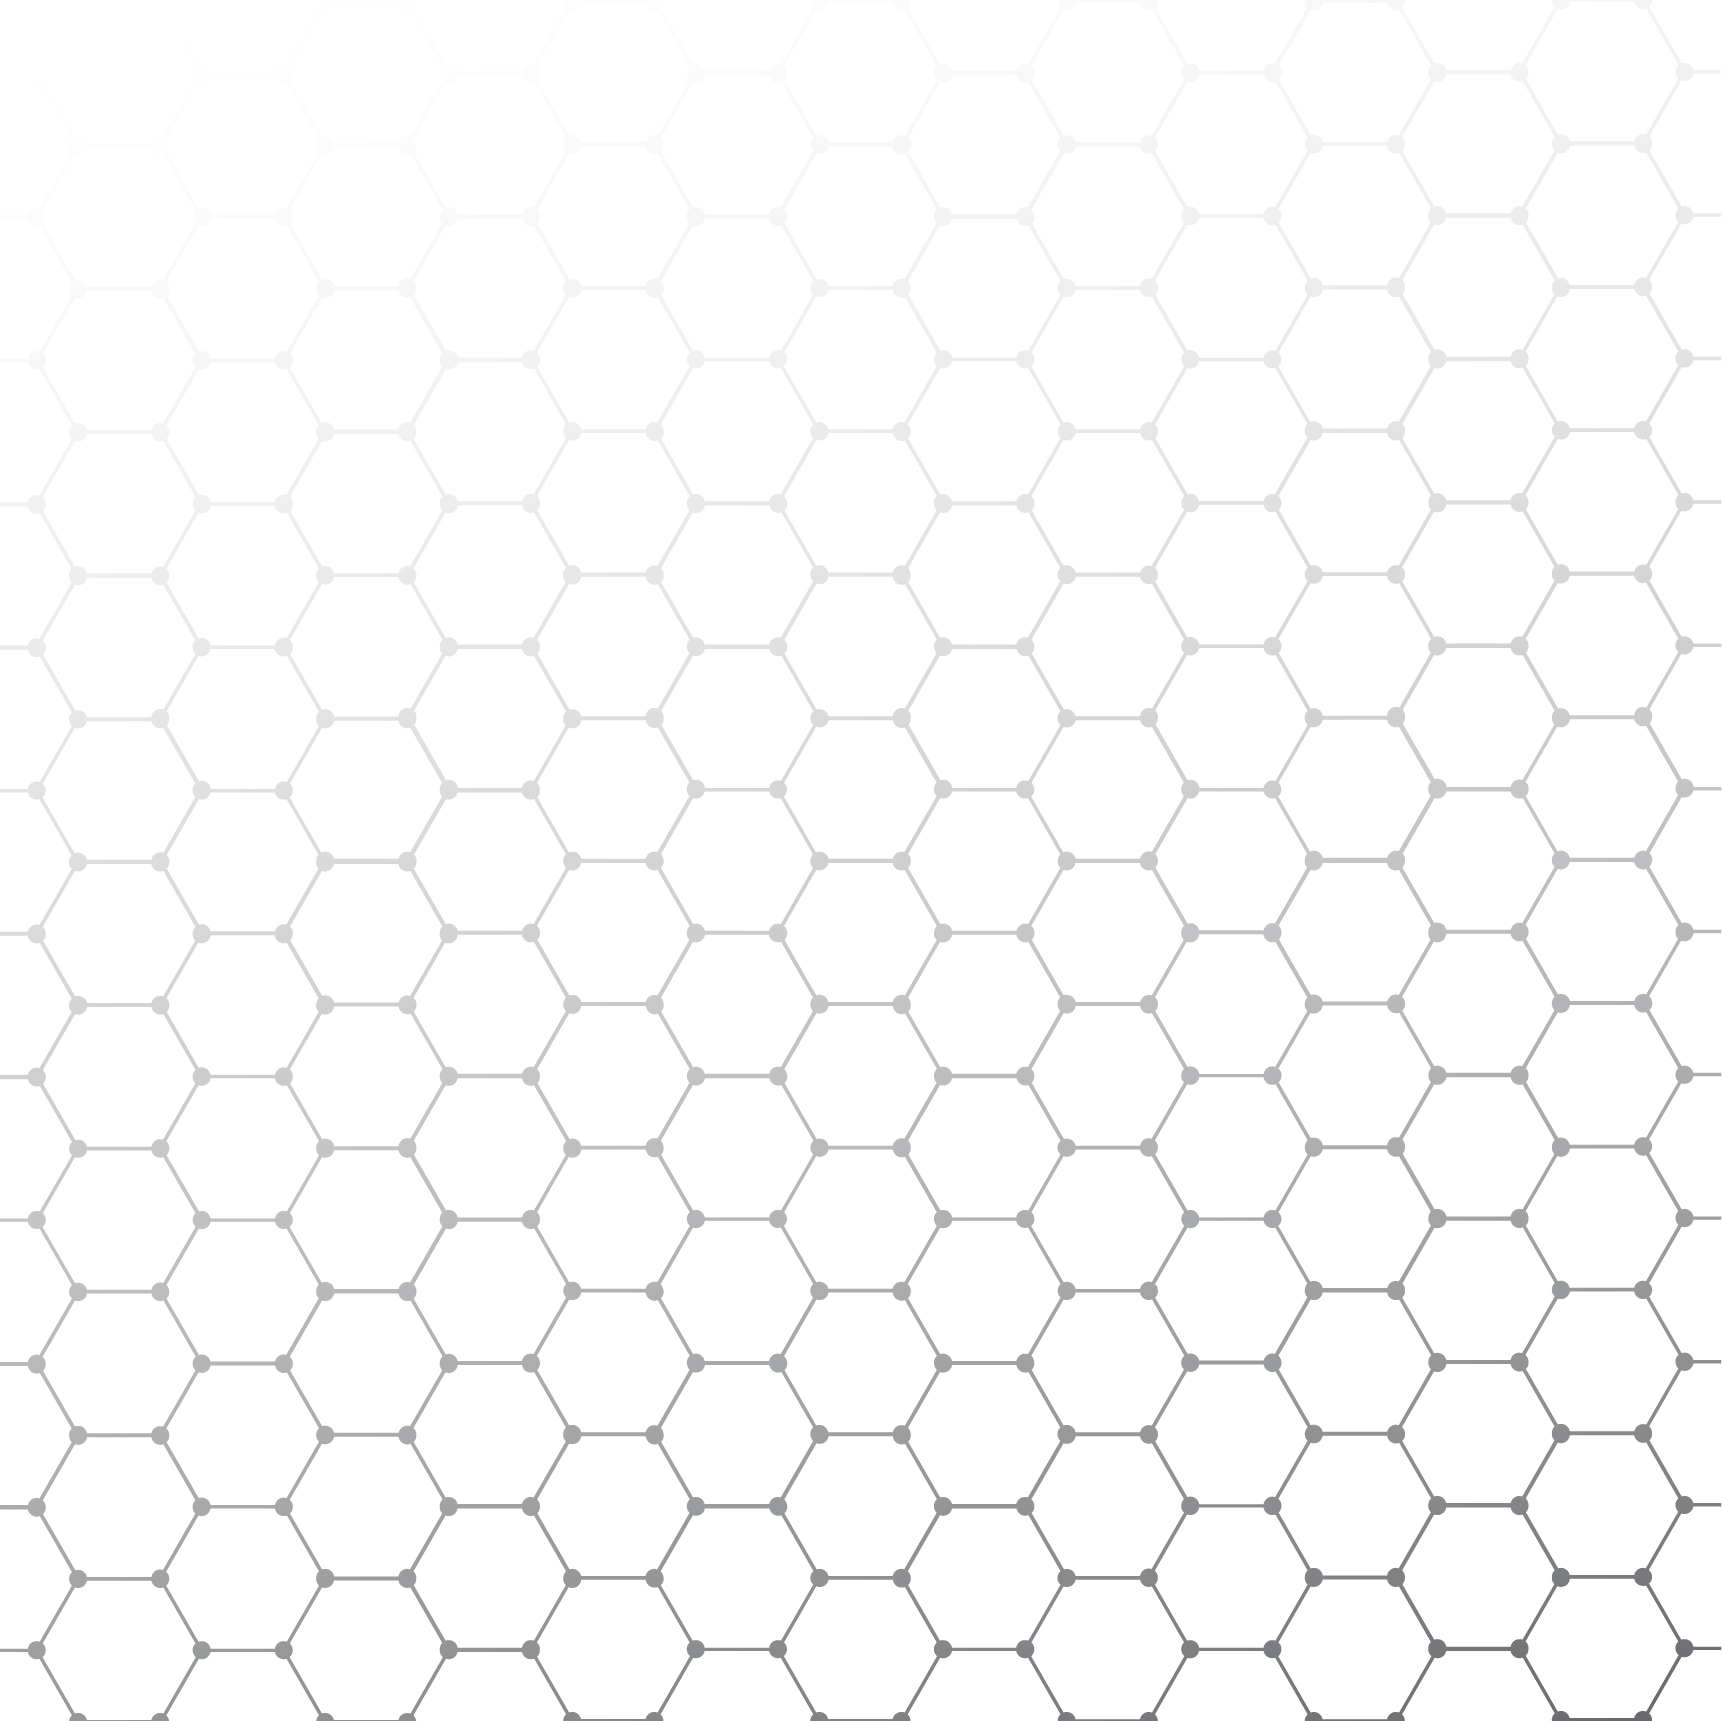 SERP Matrix Hexagon